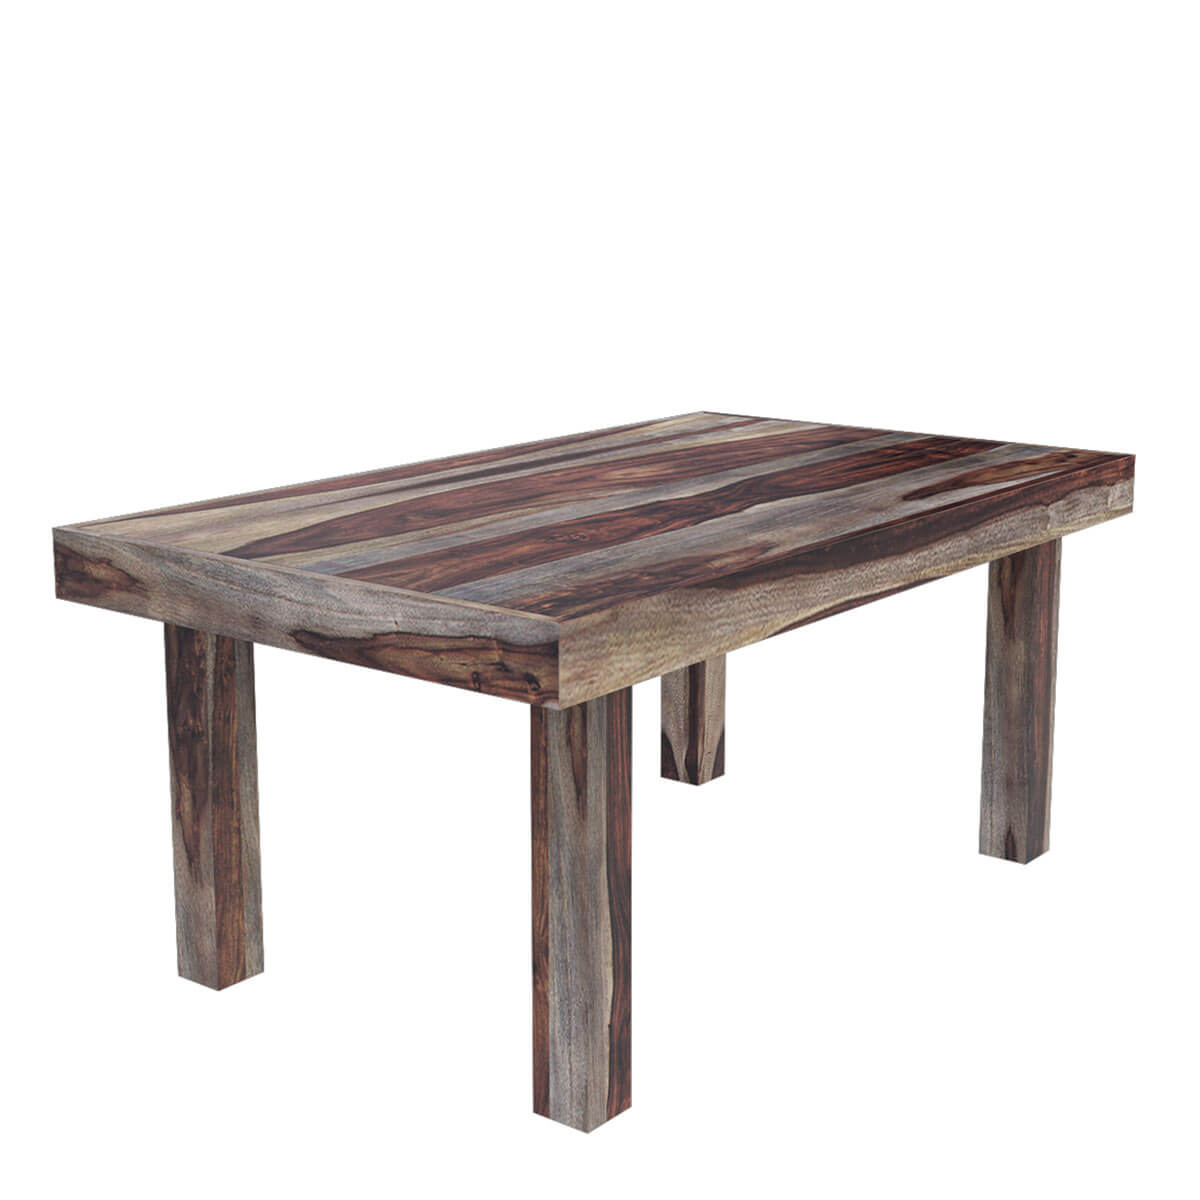 Frisco modern solid wood casual rustic dining room table for Table and chair set